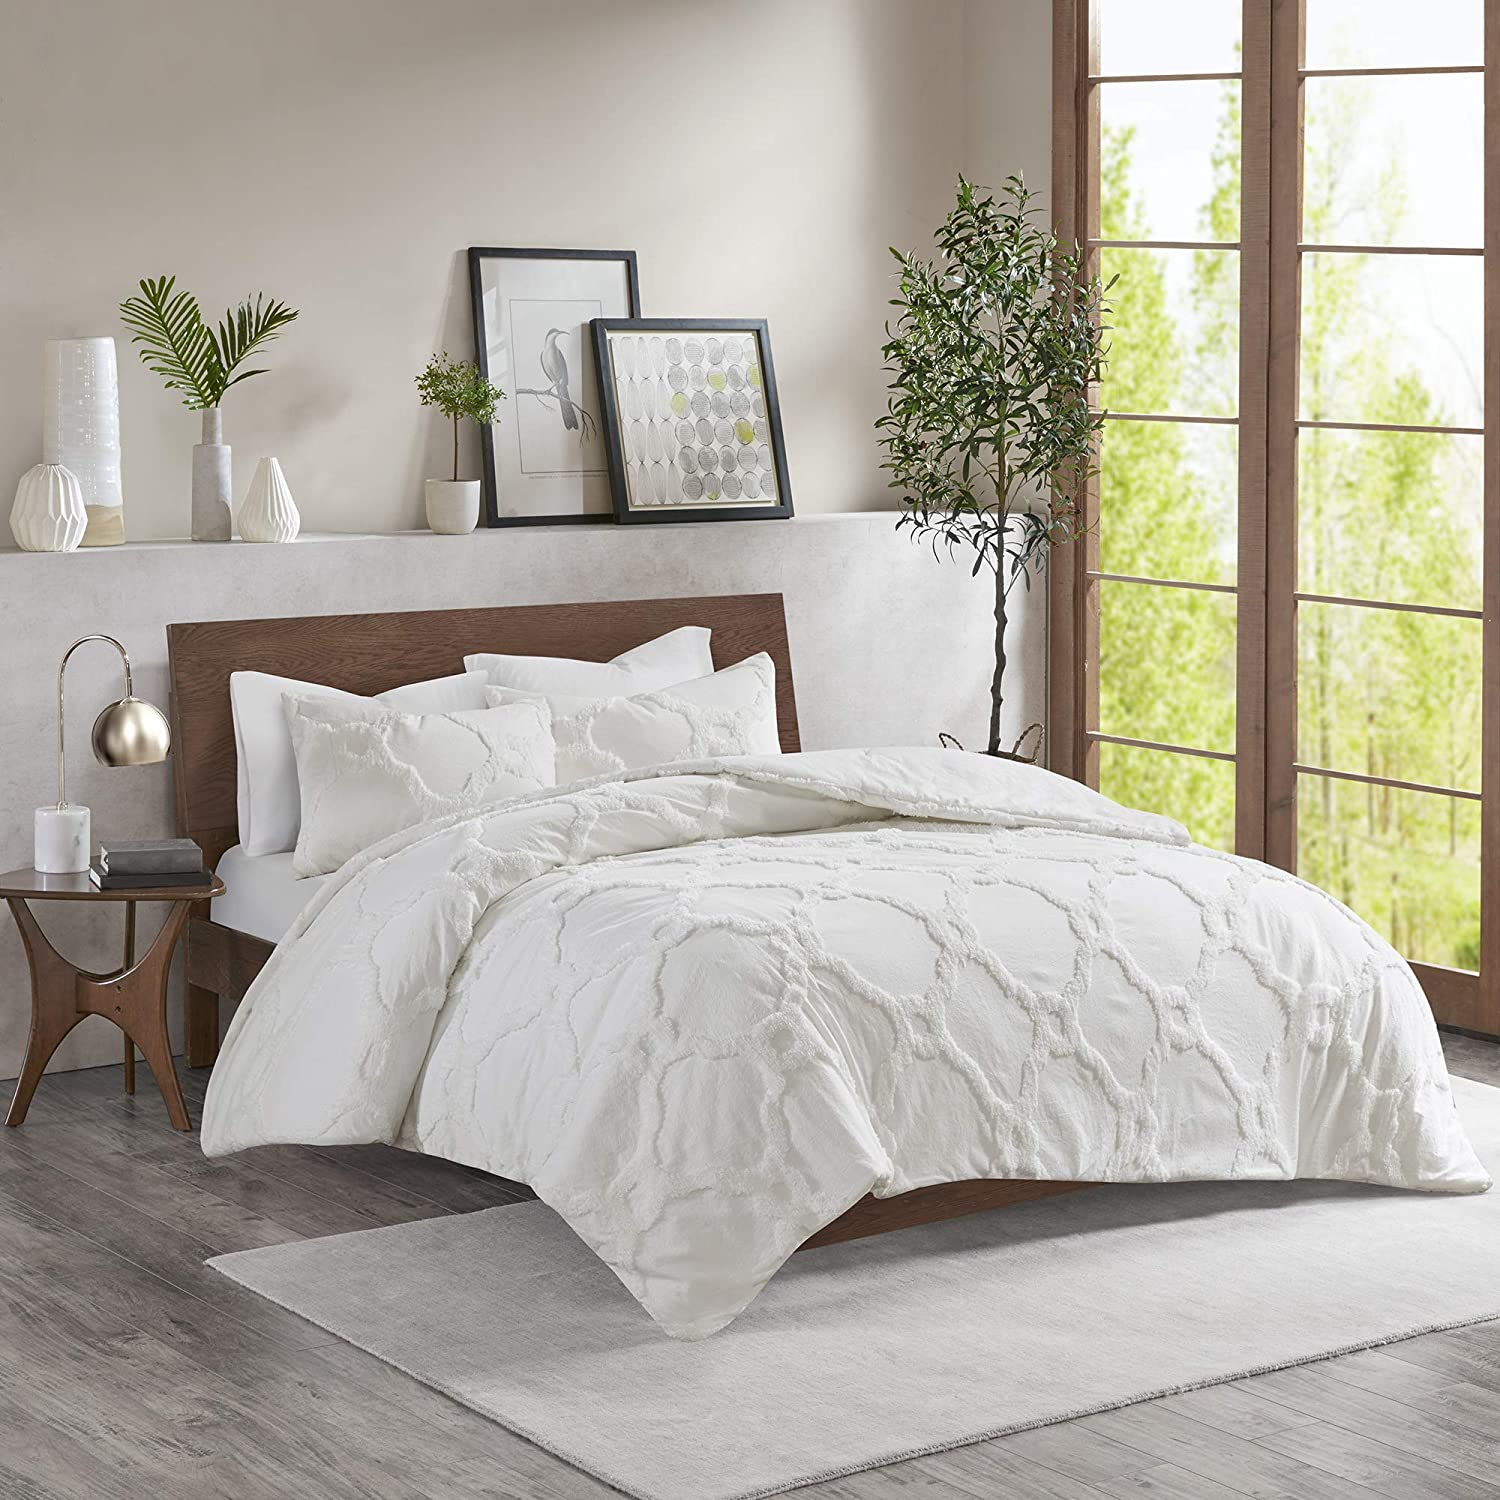 """Madison Park Tufted Chenille 100% Cotton Duvet Modern Luxe All Season Comforter Cover Bed Set with Matching Shams, Full/Queen(90""""x90""""), Pacey, Ogee White"""